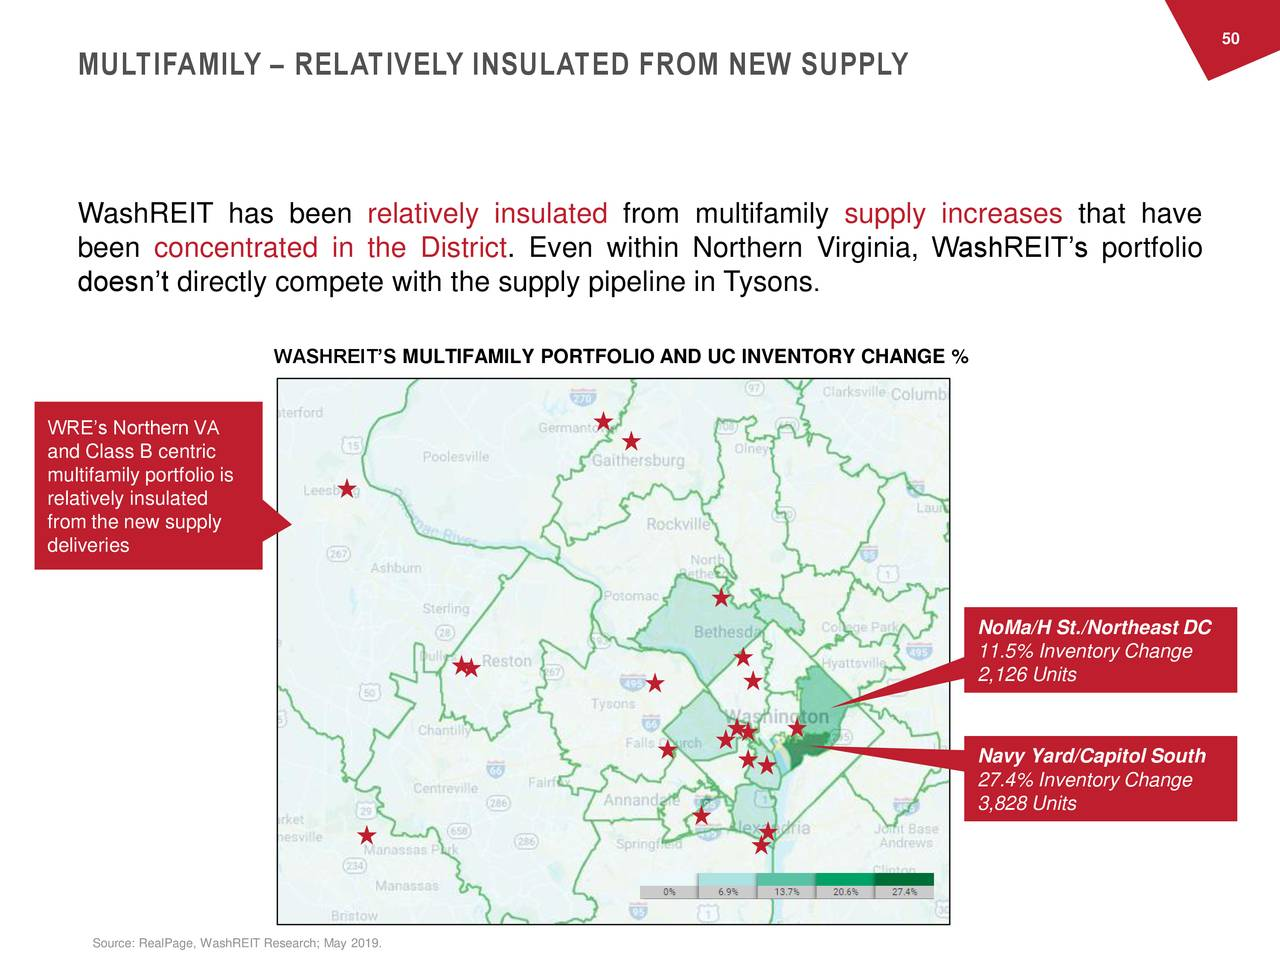 MULTIFAMILY – RELATIVELY INSULATED FROM NEW SUPPLY WashREIT has been relatively insulated from multifamily supply increases that have been concentrated in the District. Even within Northern Virginia, WashREIT's portfolio doesn't directly compete with the supply pipeline in Tysons . WASHREIT'S MULTIFAMILY PORTFOLIO AND UC INVENTORY CHANGE % WRE's Northern VA and Class B centric multifamily portfolio is relatively insulated from the new supply deliveries NoMa/H St./Northeast DC 11.5% Inventory Change 2,126 Units Navy Yard/Capitol South 27.4% Inventory Change 3,828 Units Source: RealPage, WashREIT Research; May 2019.